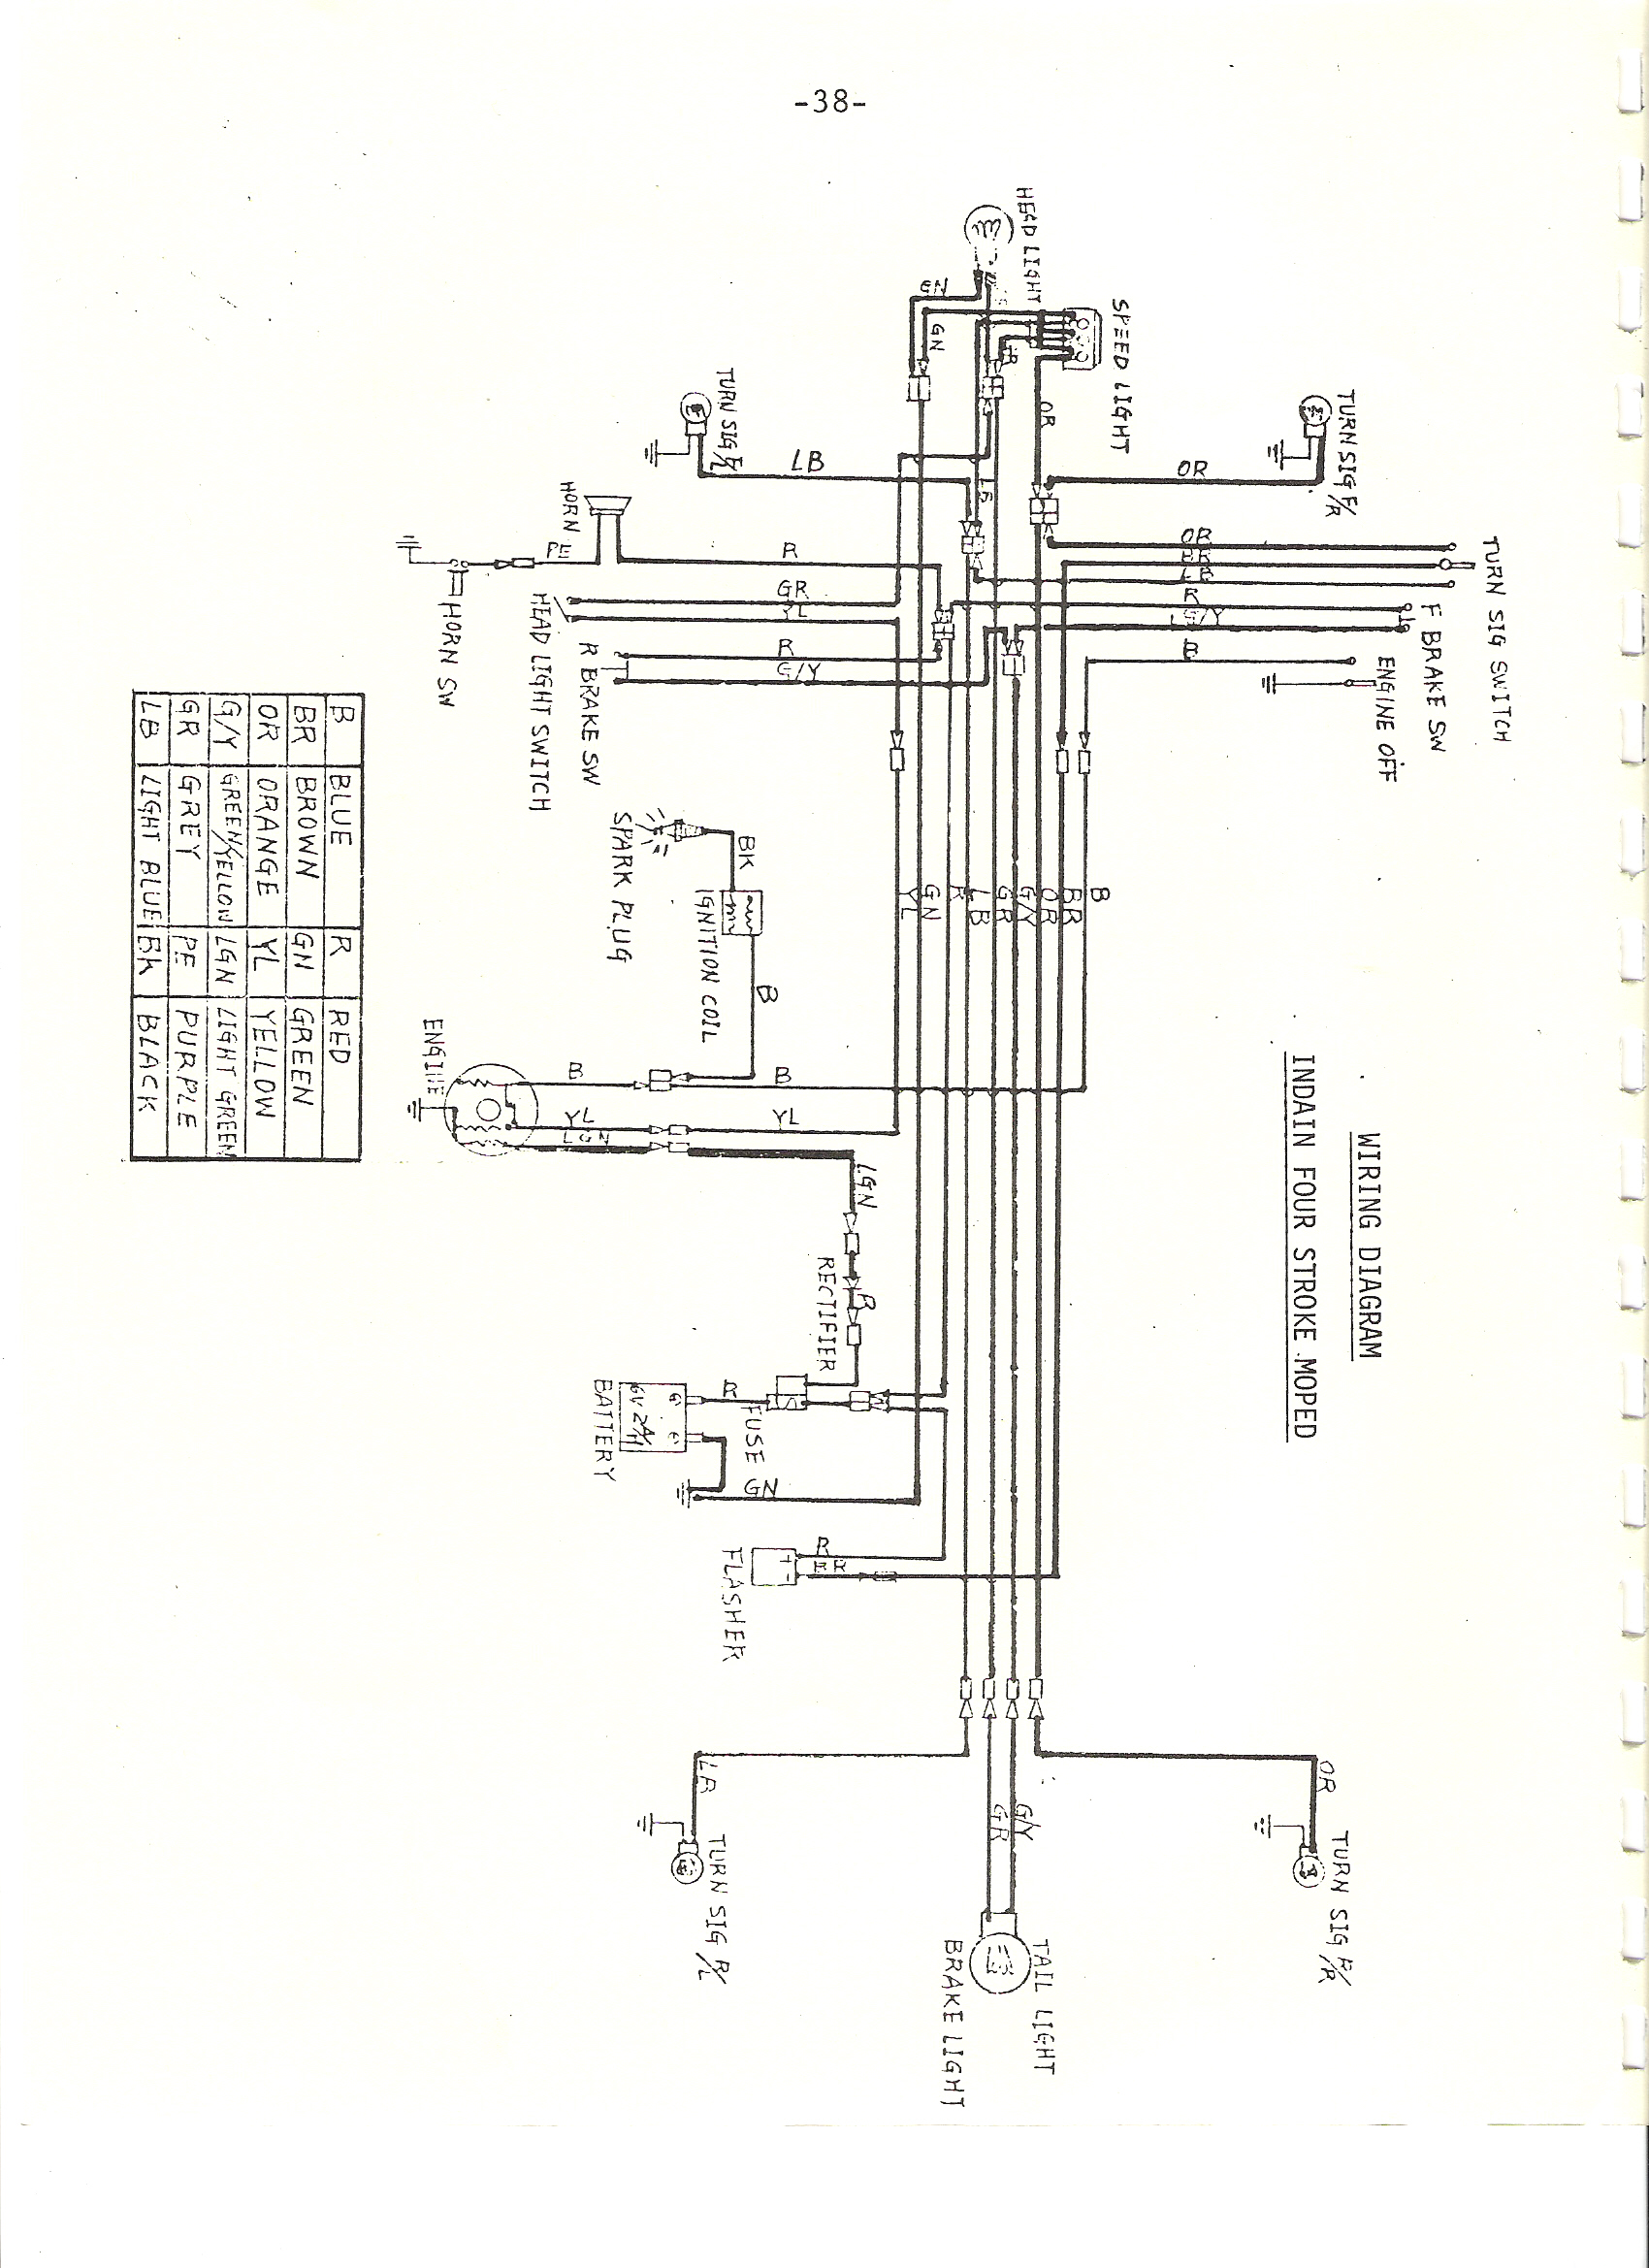 Re: 1980 Indian Chief wiring diagram? — Moped Army